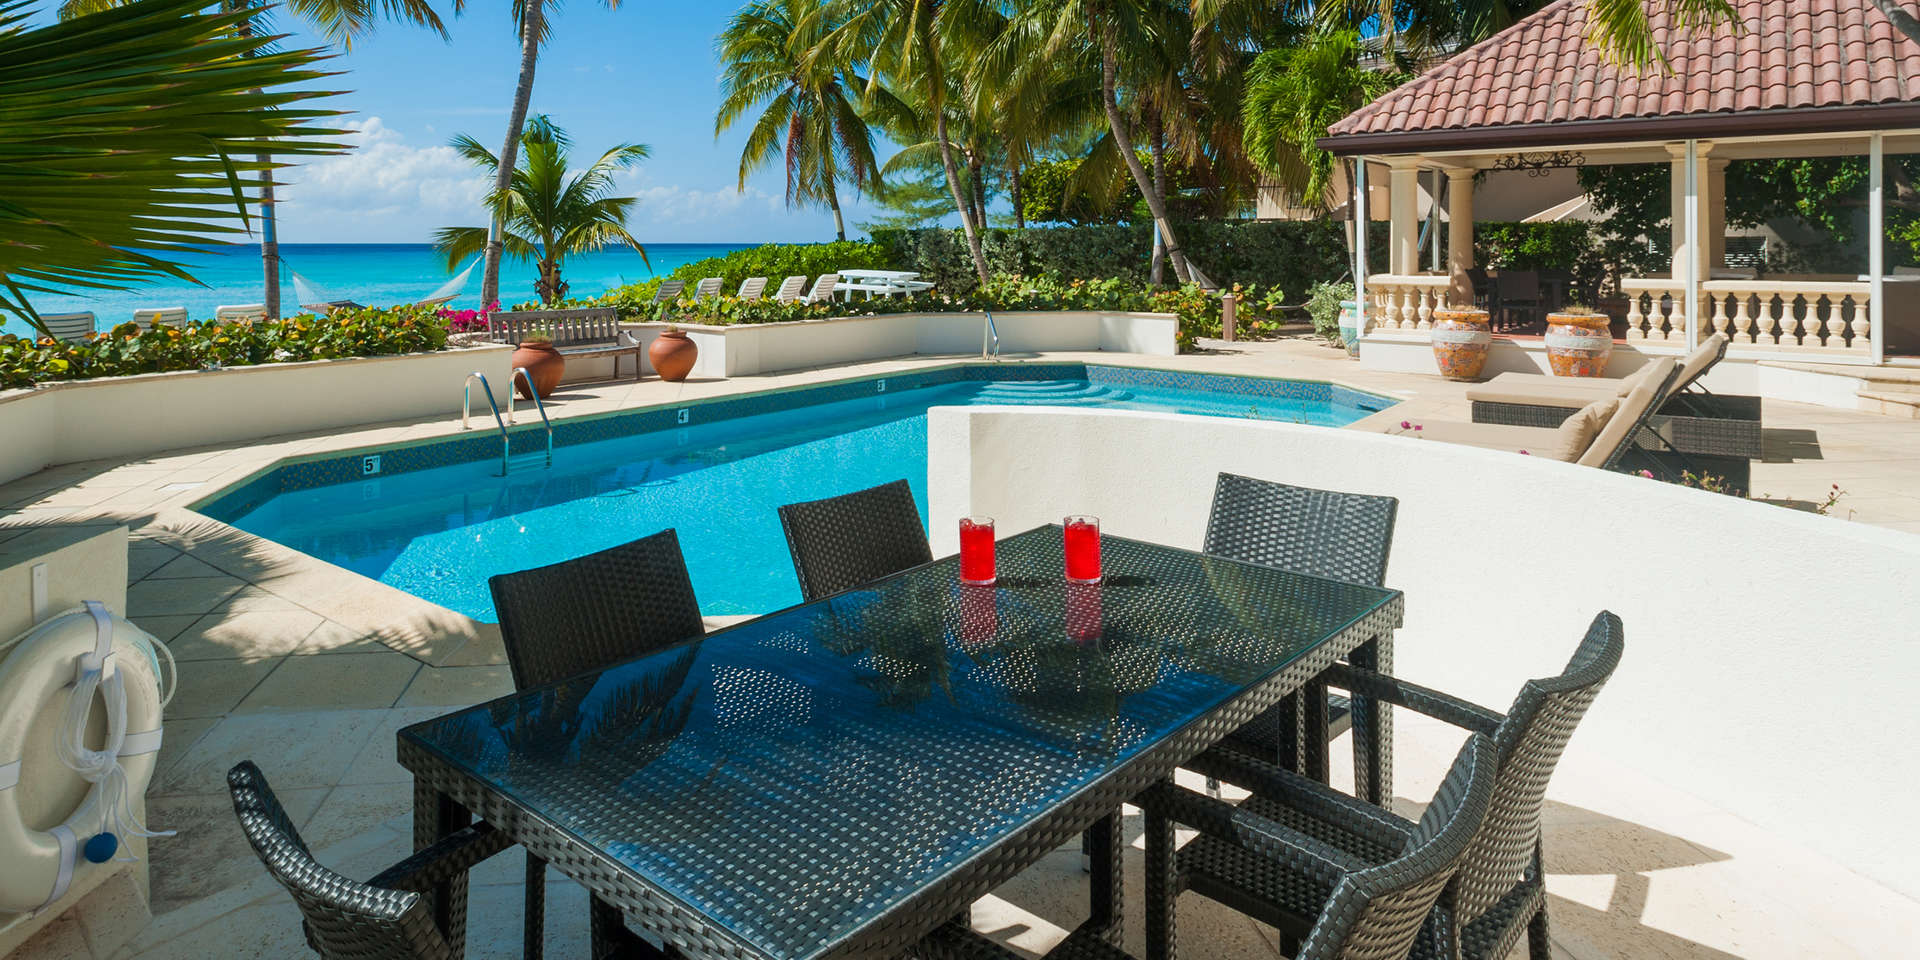 Luxury villa rentals caribbean - Cayman islands - Grand cayman - Seven mile beach - Coconut Walk - Image 1/27